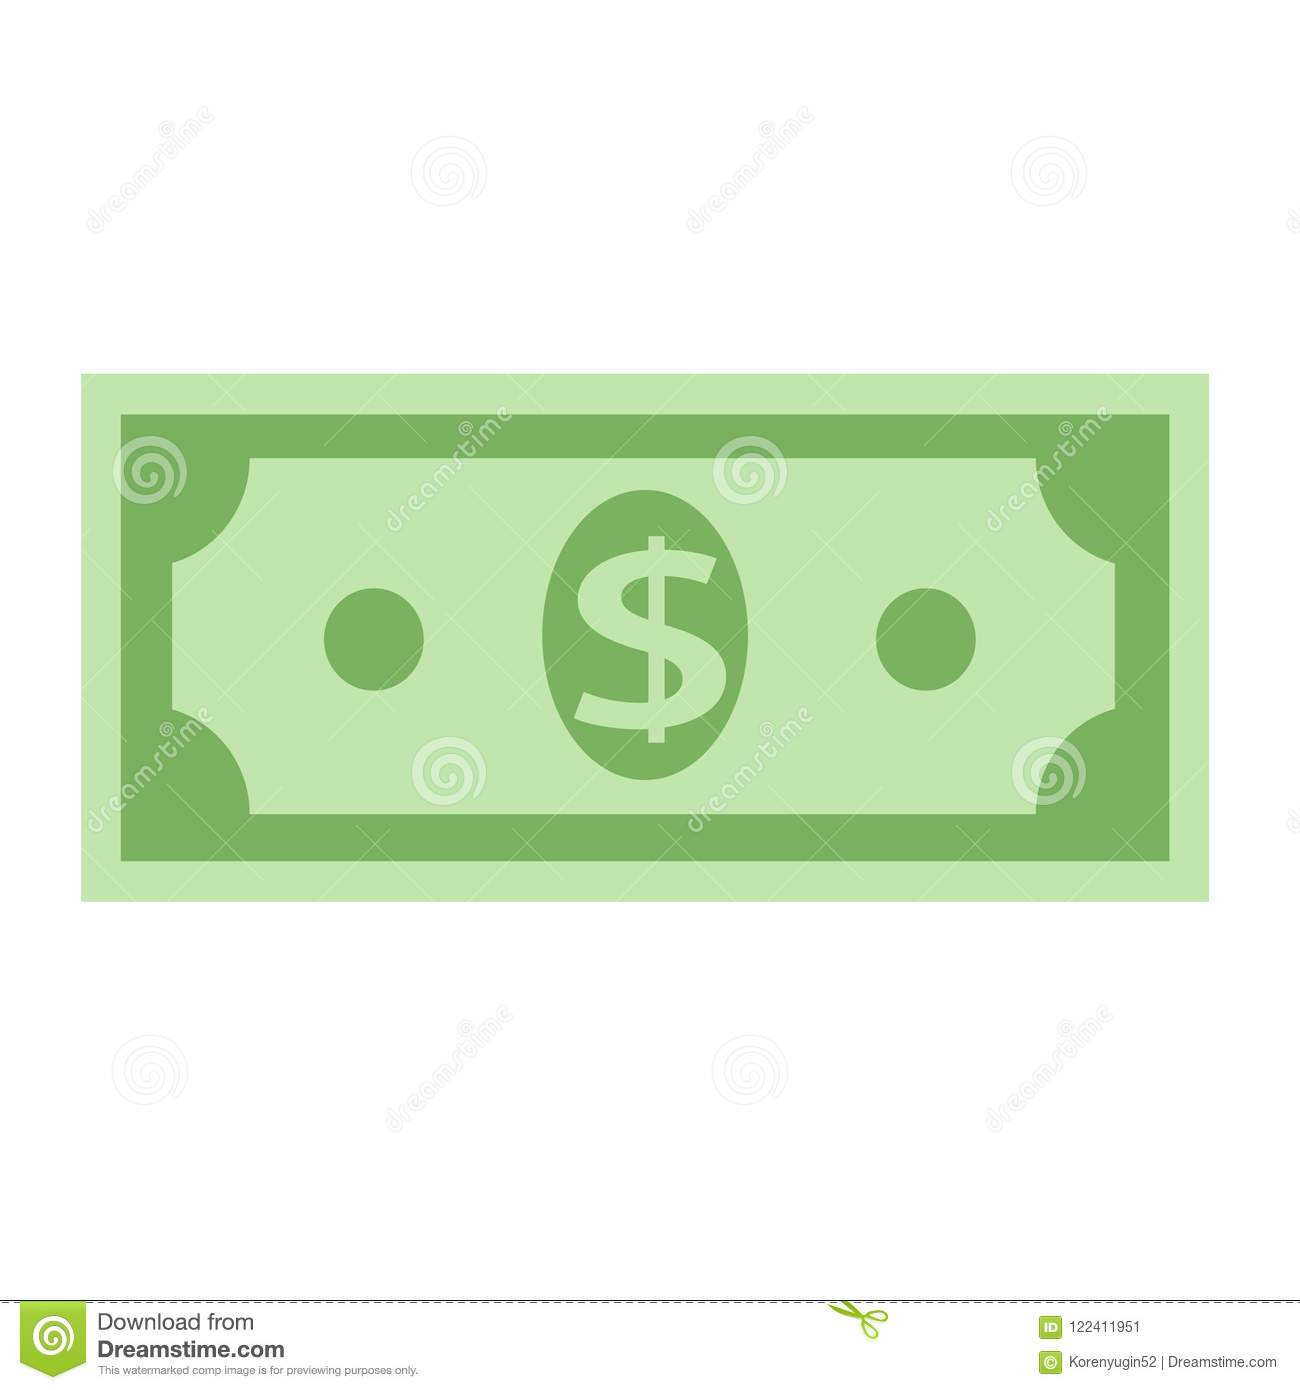 Dollar currency banknote icon, stock vector illustration